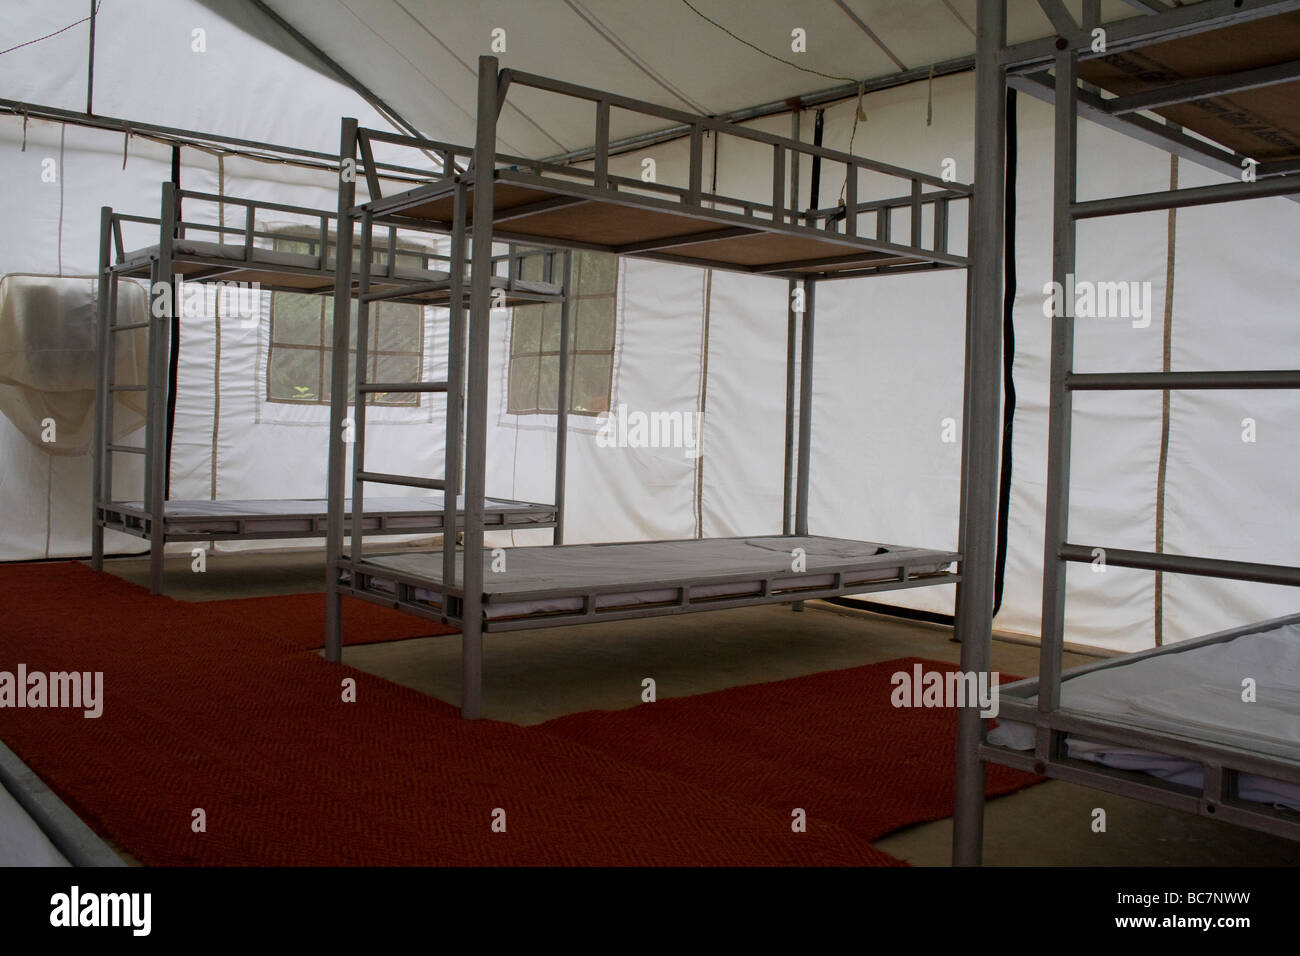 Picture of: Dormitory Beds High Resolution Stock Photography And Images Alamy